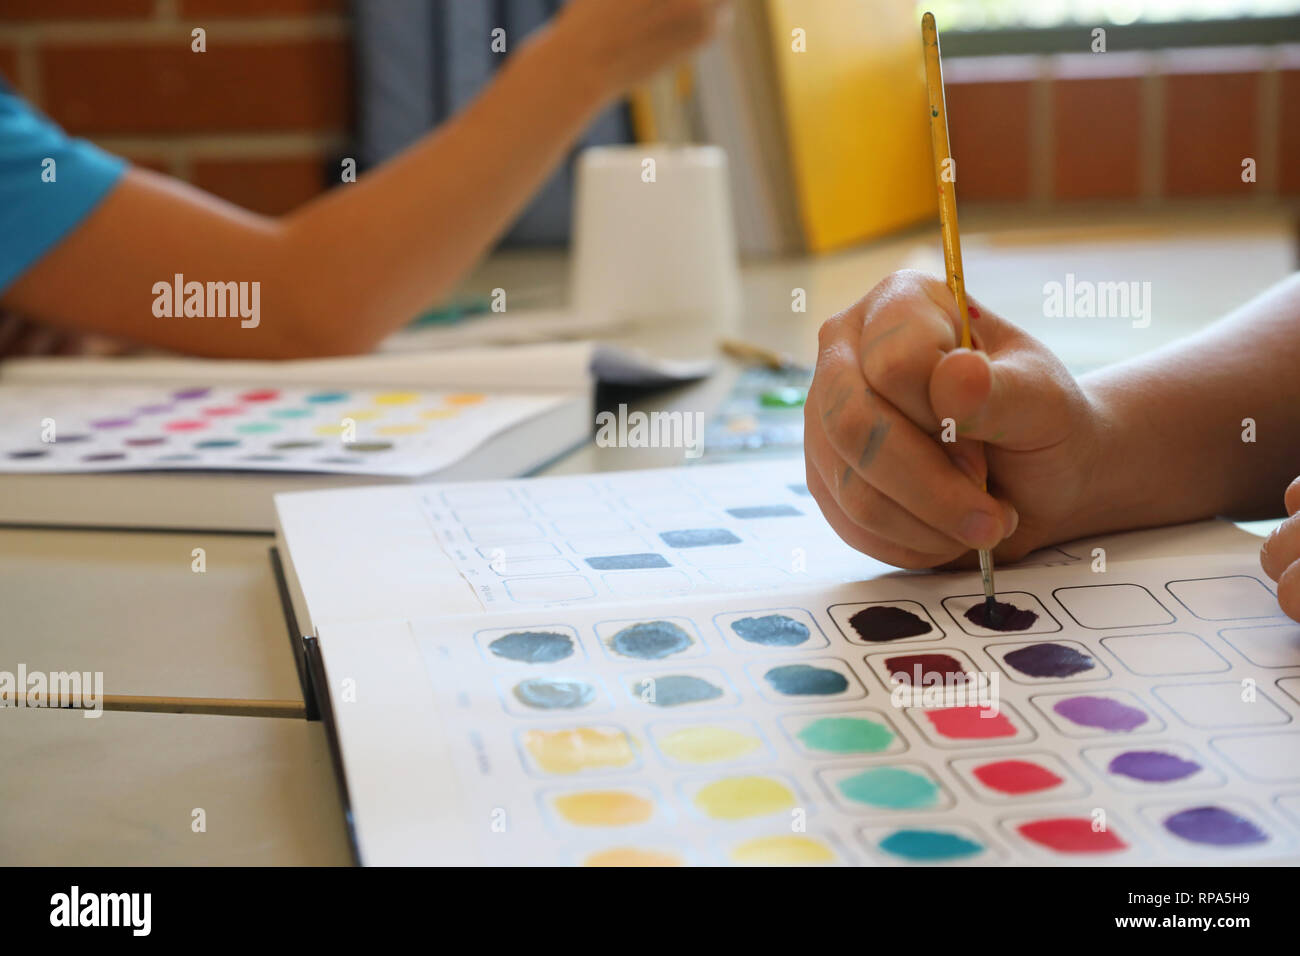 Students working in visual art process diaries exploring experimenting with colour theory. Painting in workbooks. Creative arts education concept - Stock Image